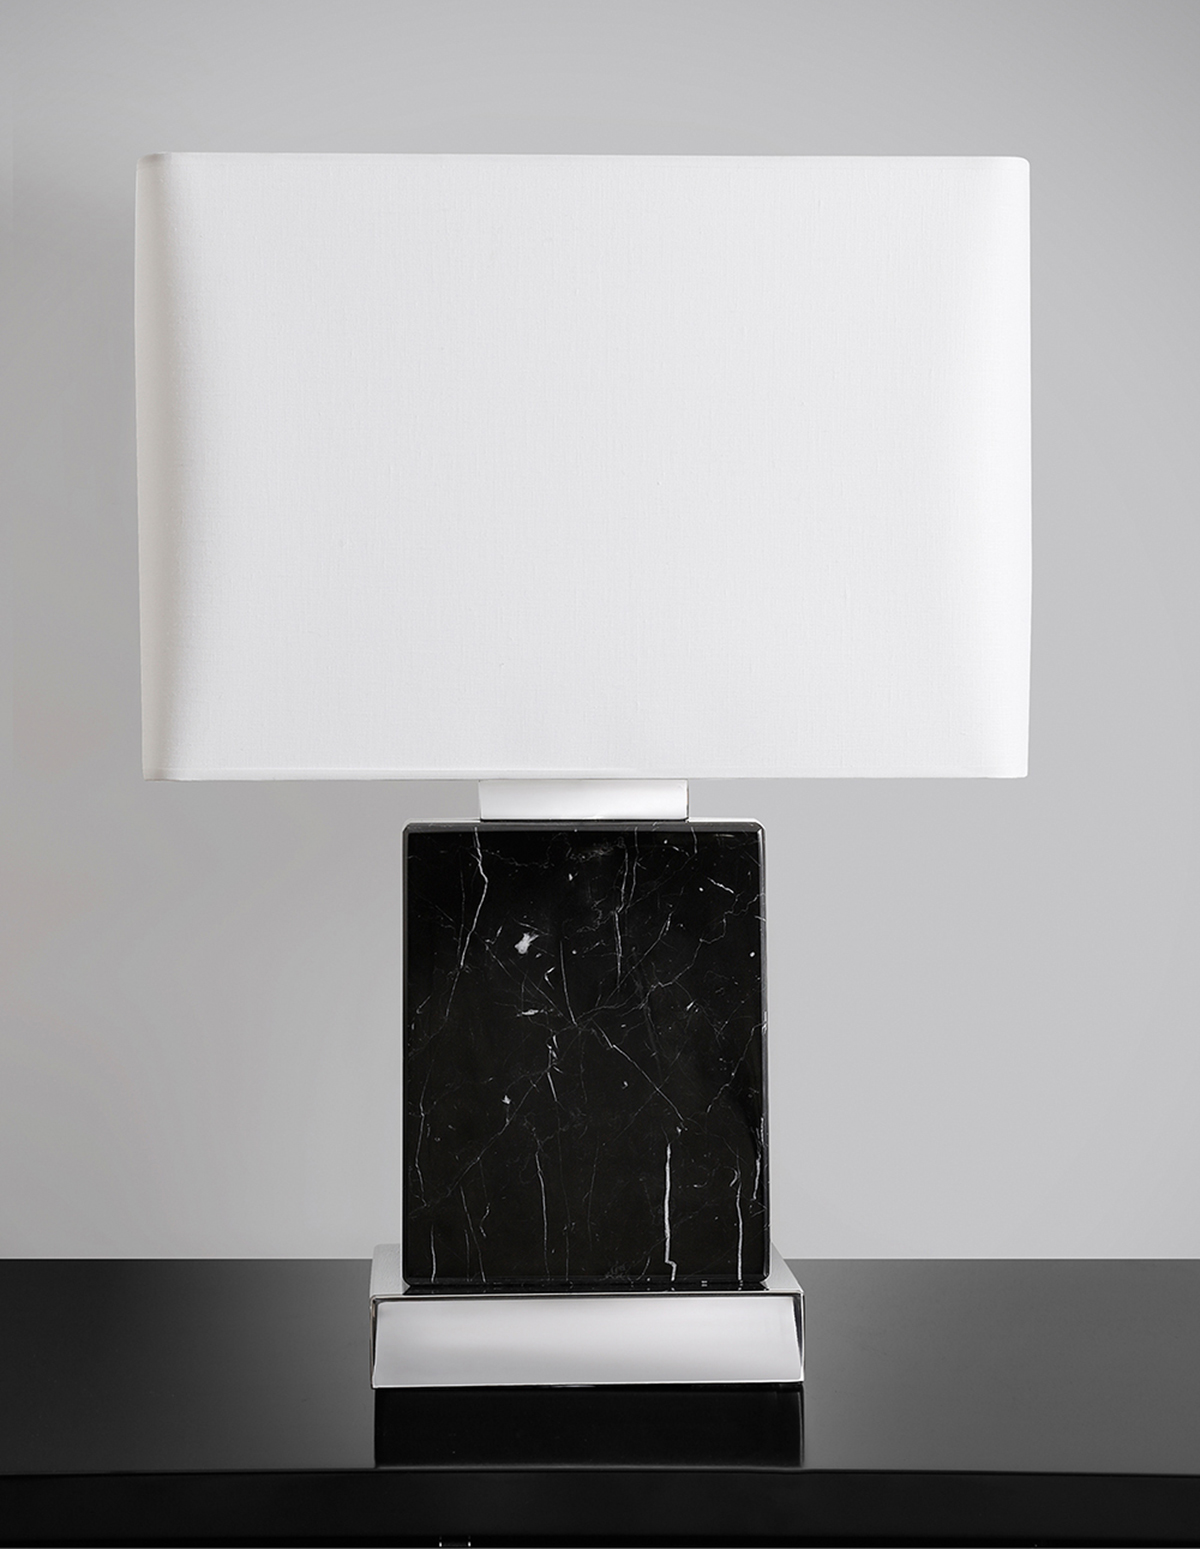 Handmade pure black marble w/ white veins and chrome details.